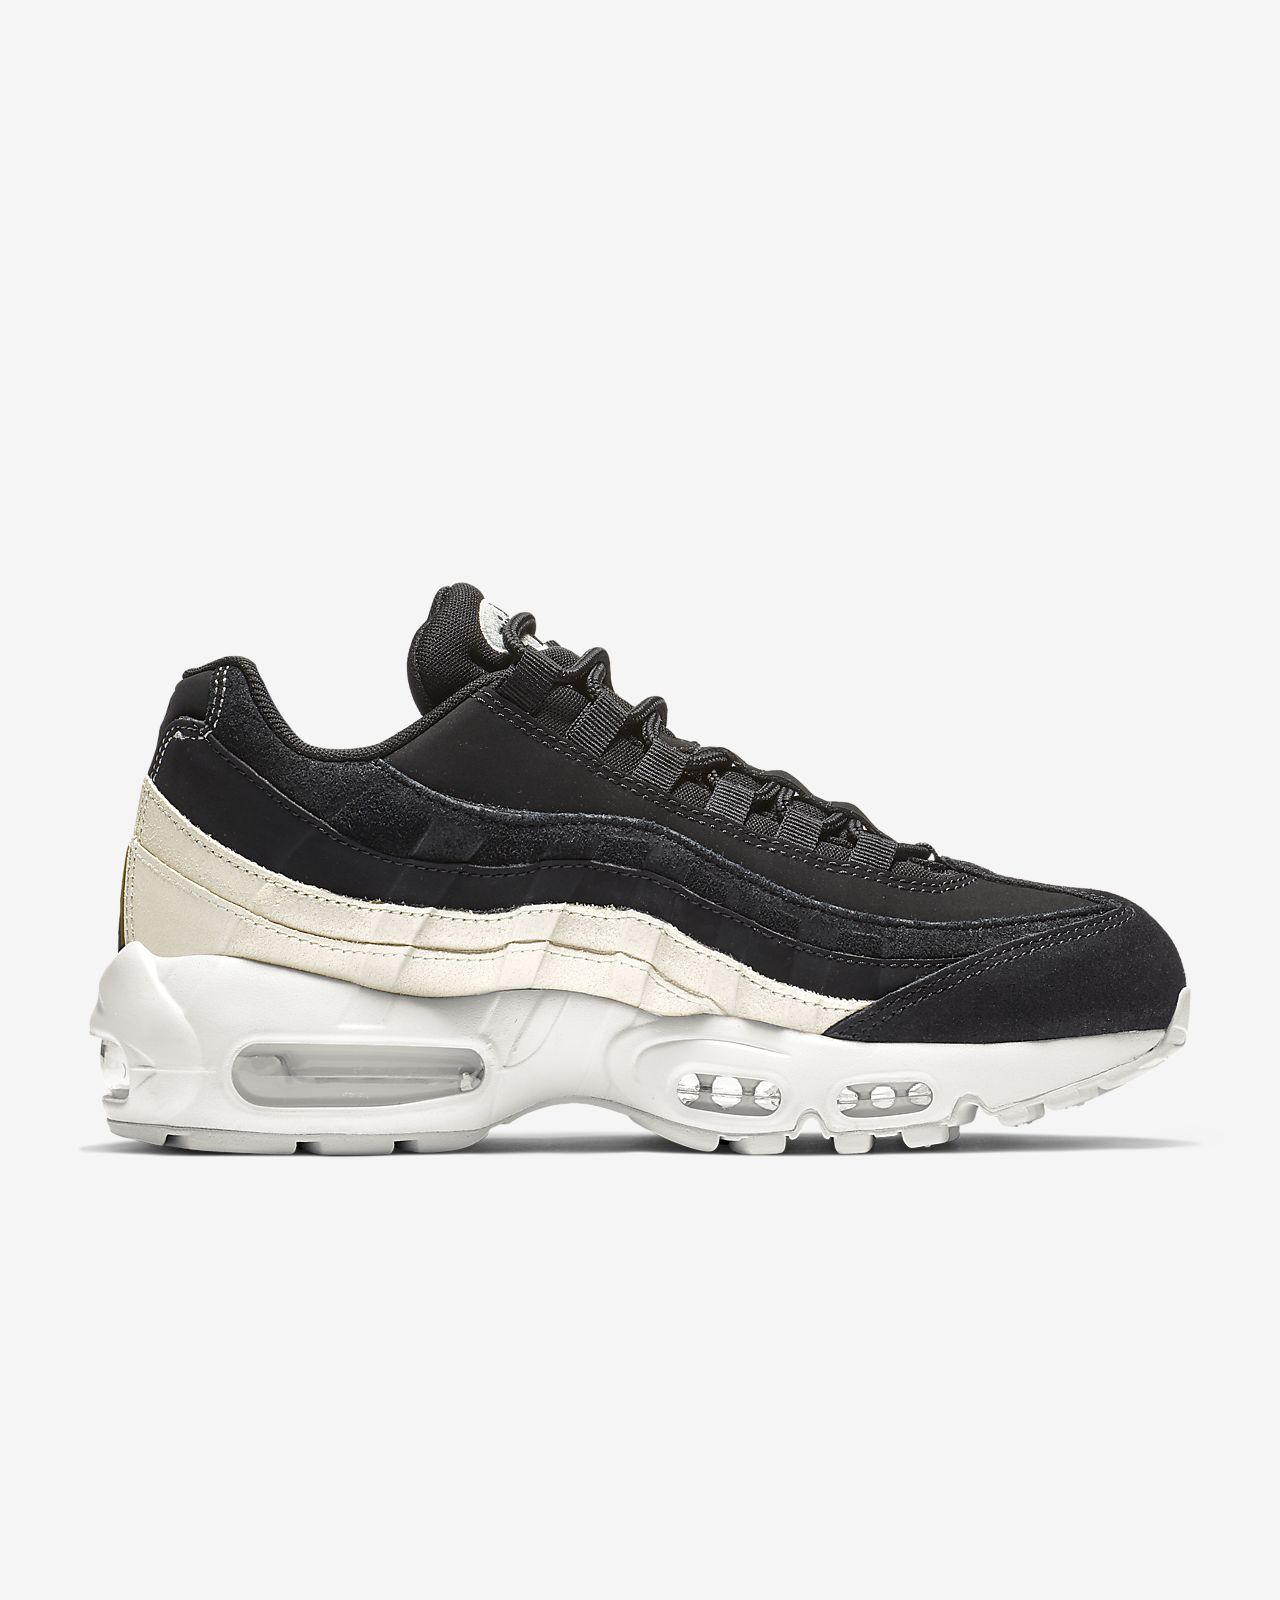 huge discount e8f34 a65c2 ... Nike Air Max 95 Premium Women s Shoe